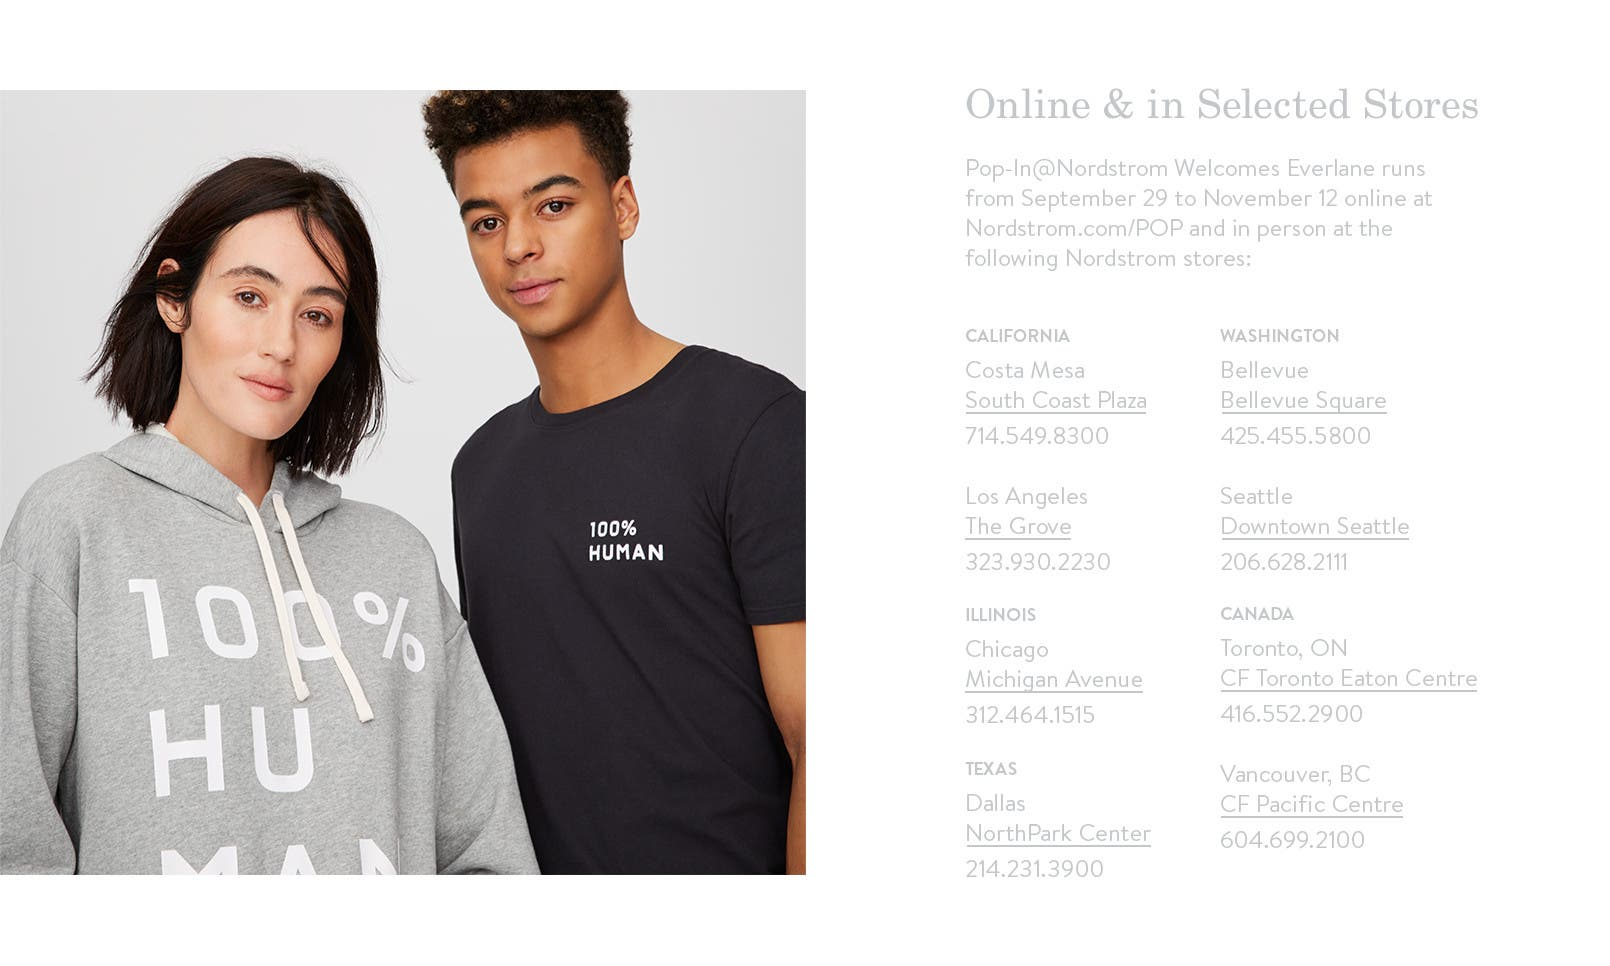 Online and in selected stores.